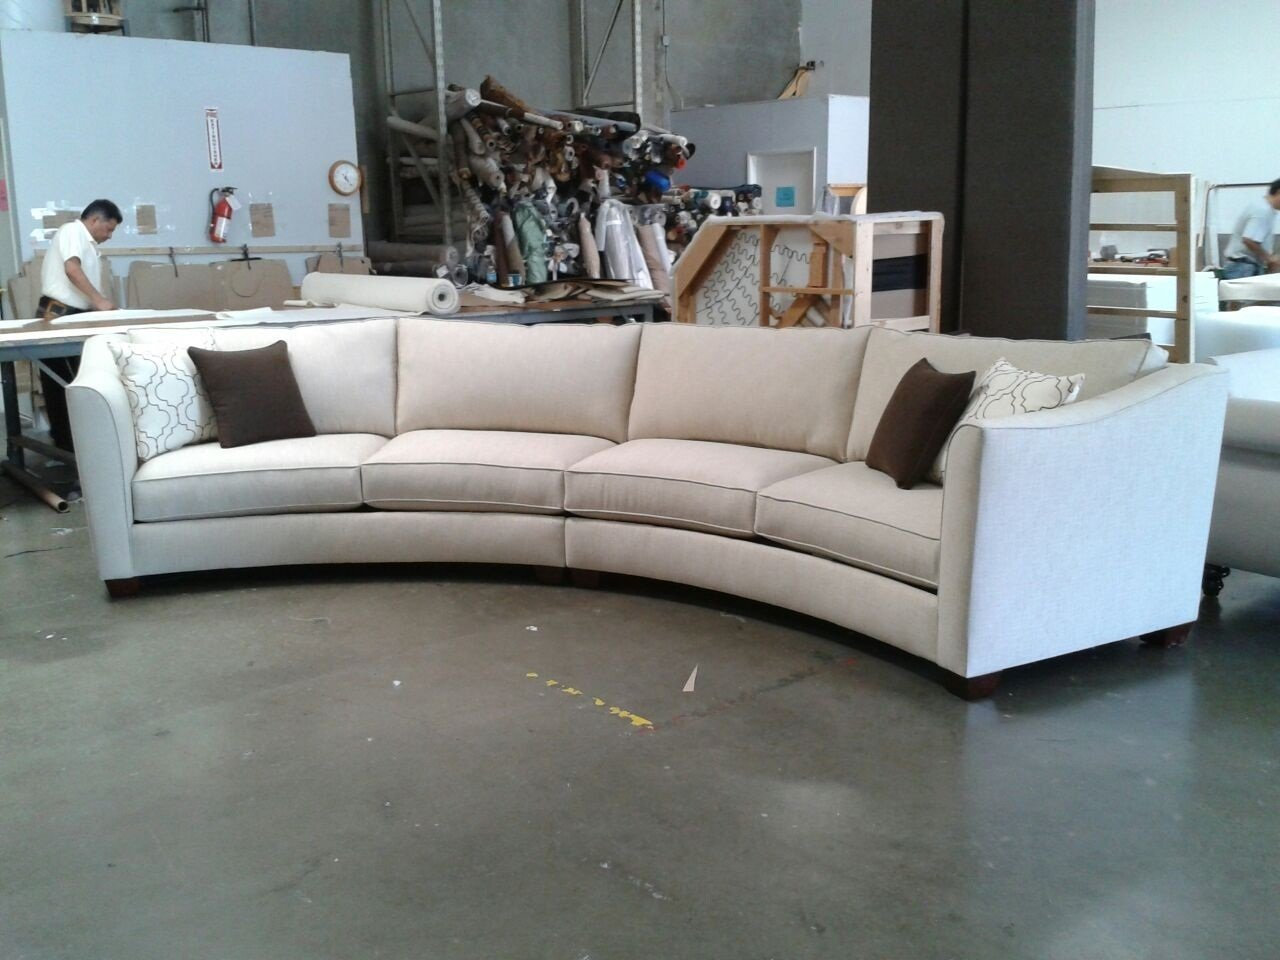 curved sectional sofa set - rich comfortable upholstered fabric -  contemporary curved RMFNBVU